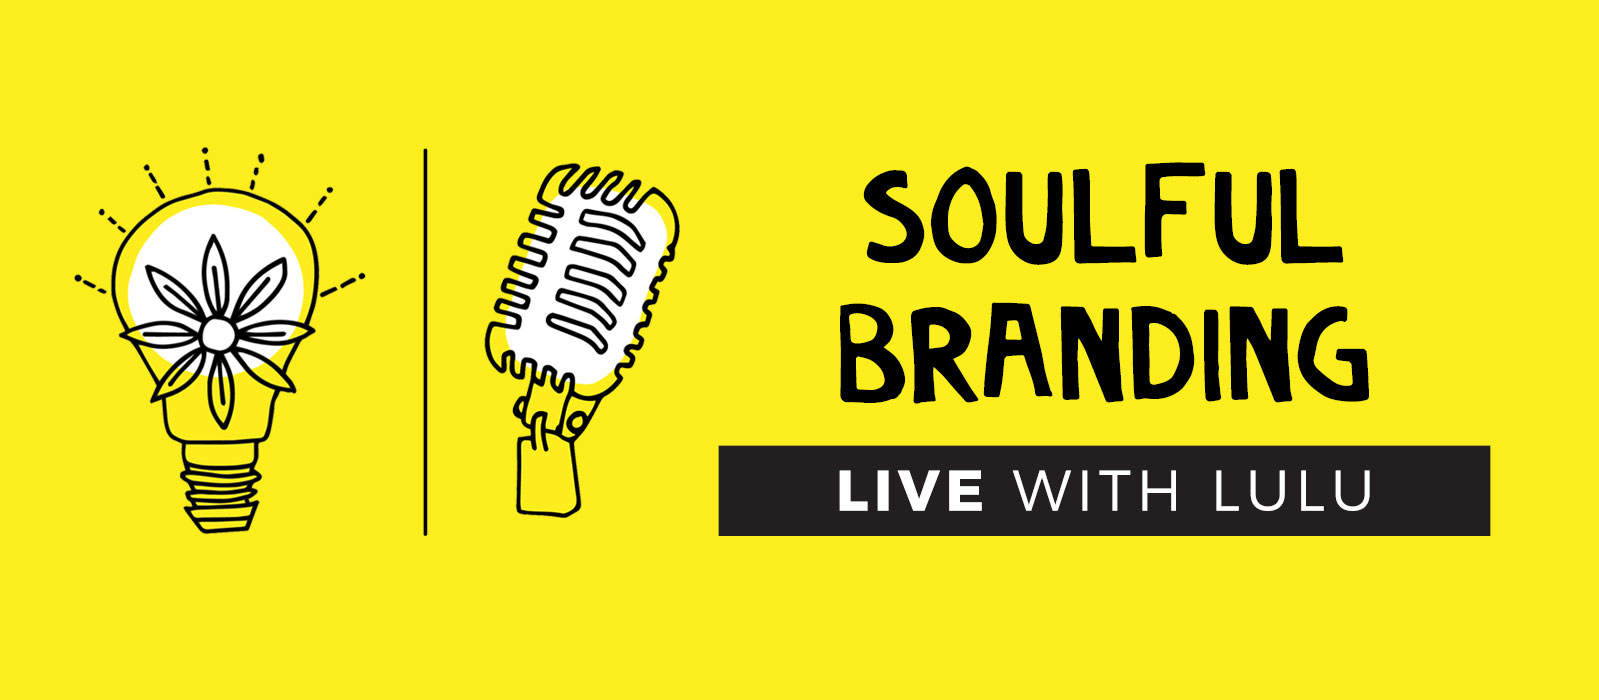 Soulful-Branding-Live-with-Lulu